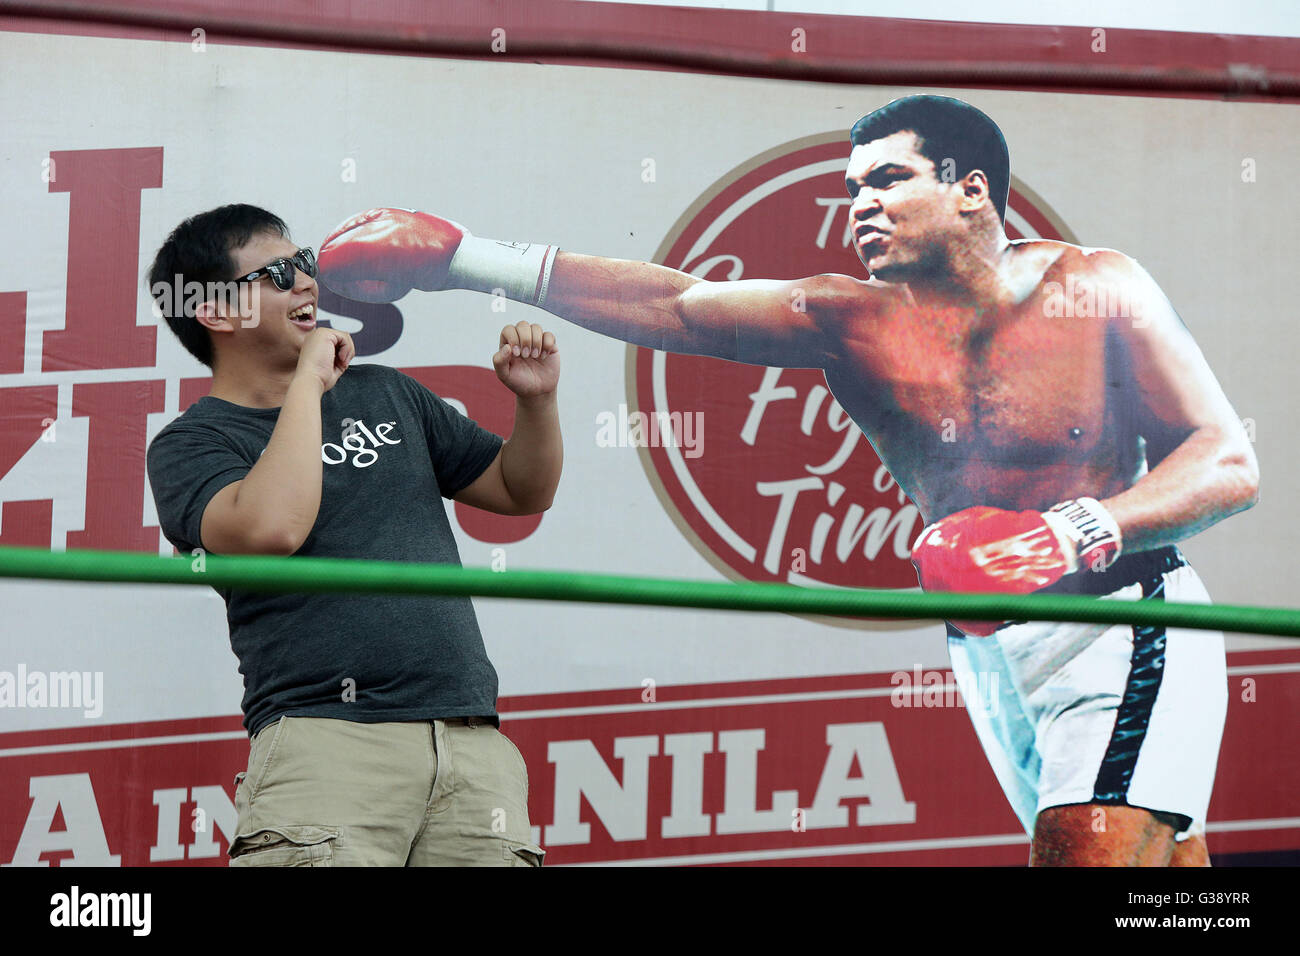 Quezon City, Arizona, USA. 3rd June, 2016. A man poses beside a life-size display of Muhammad Ali during an exhibit - Stock Image